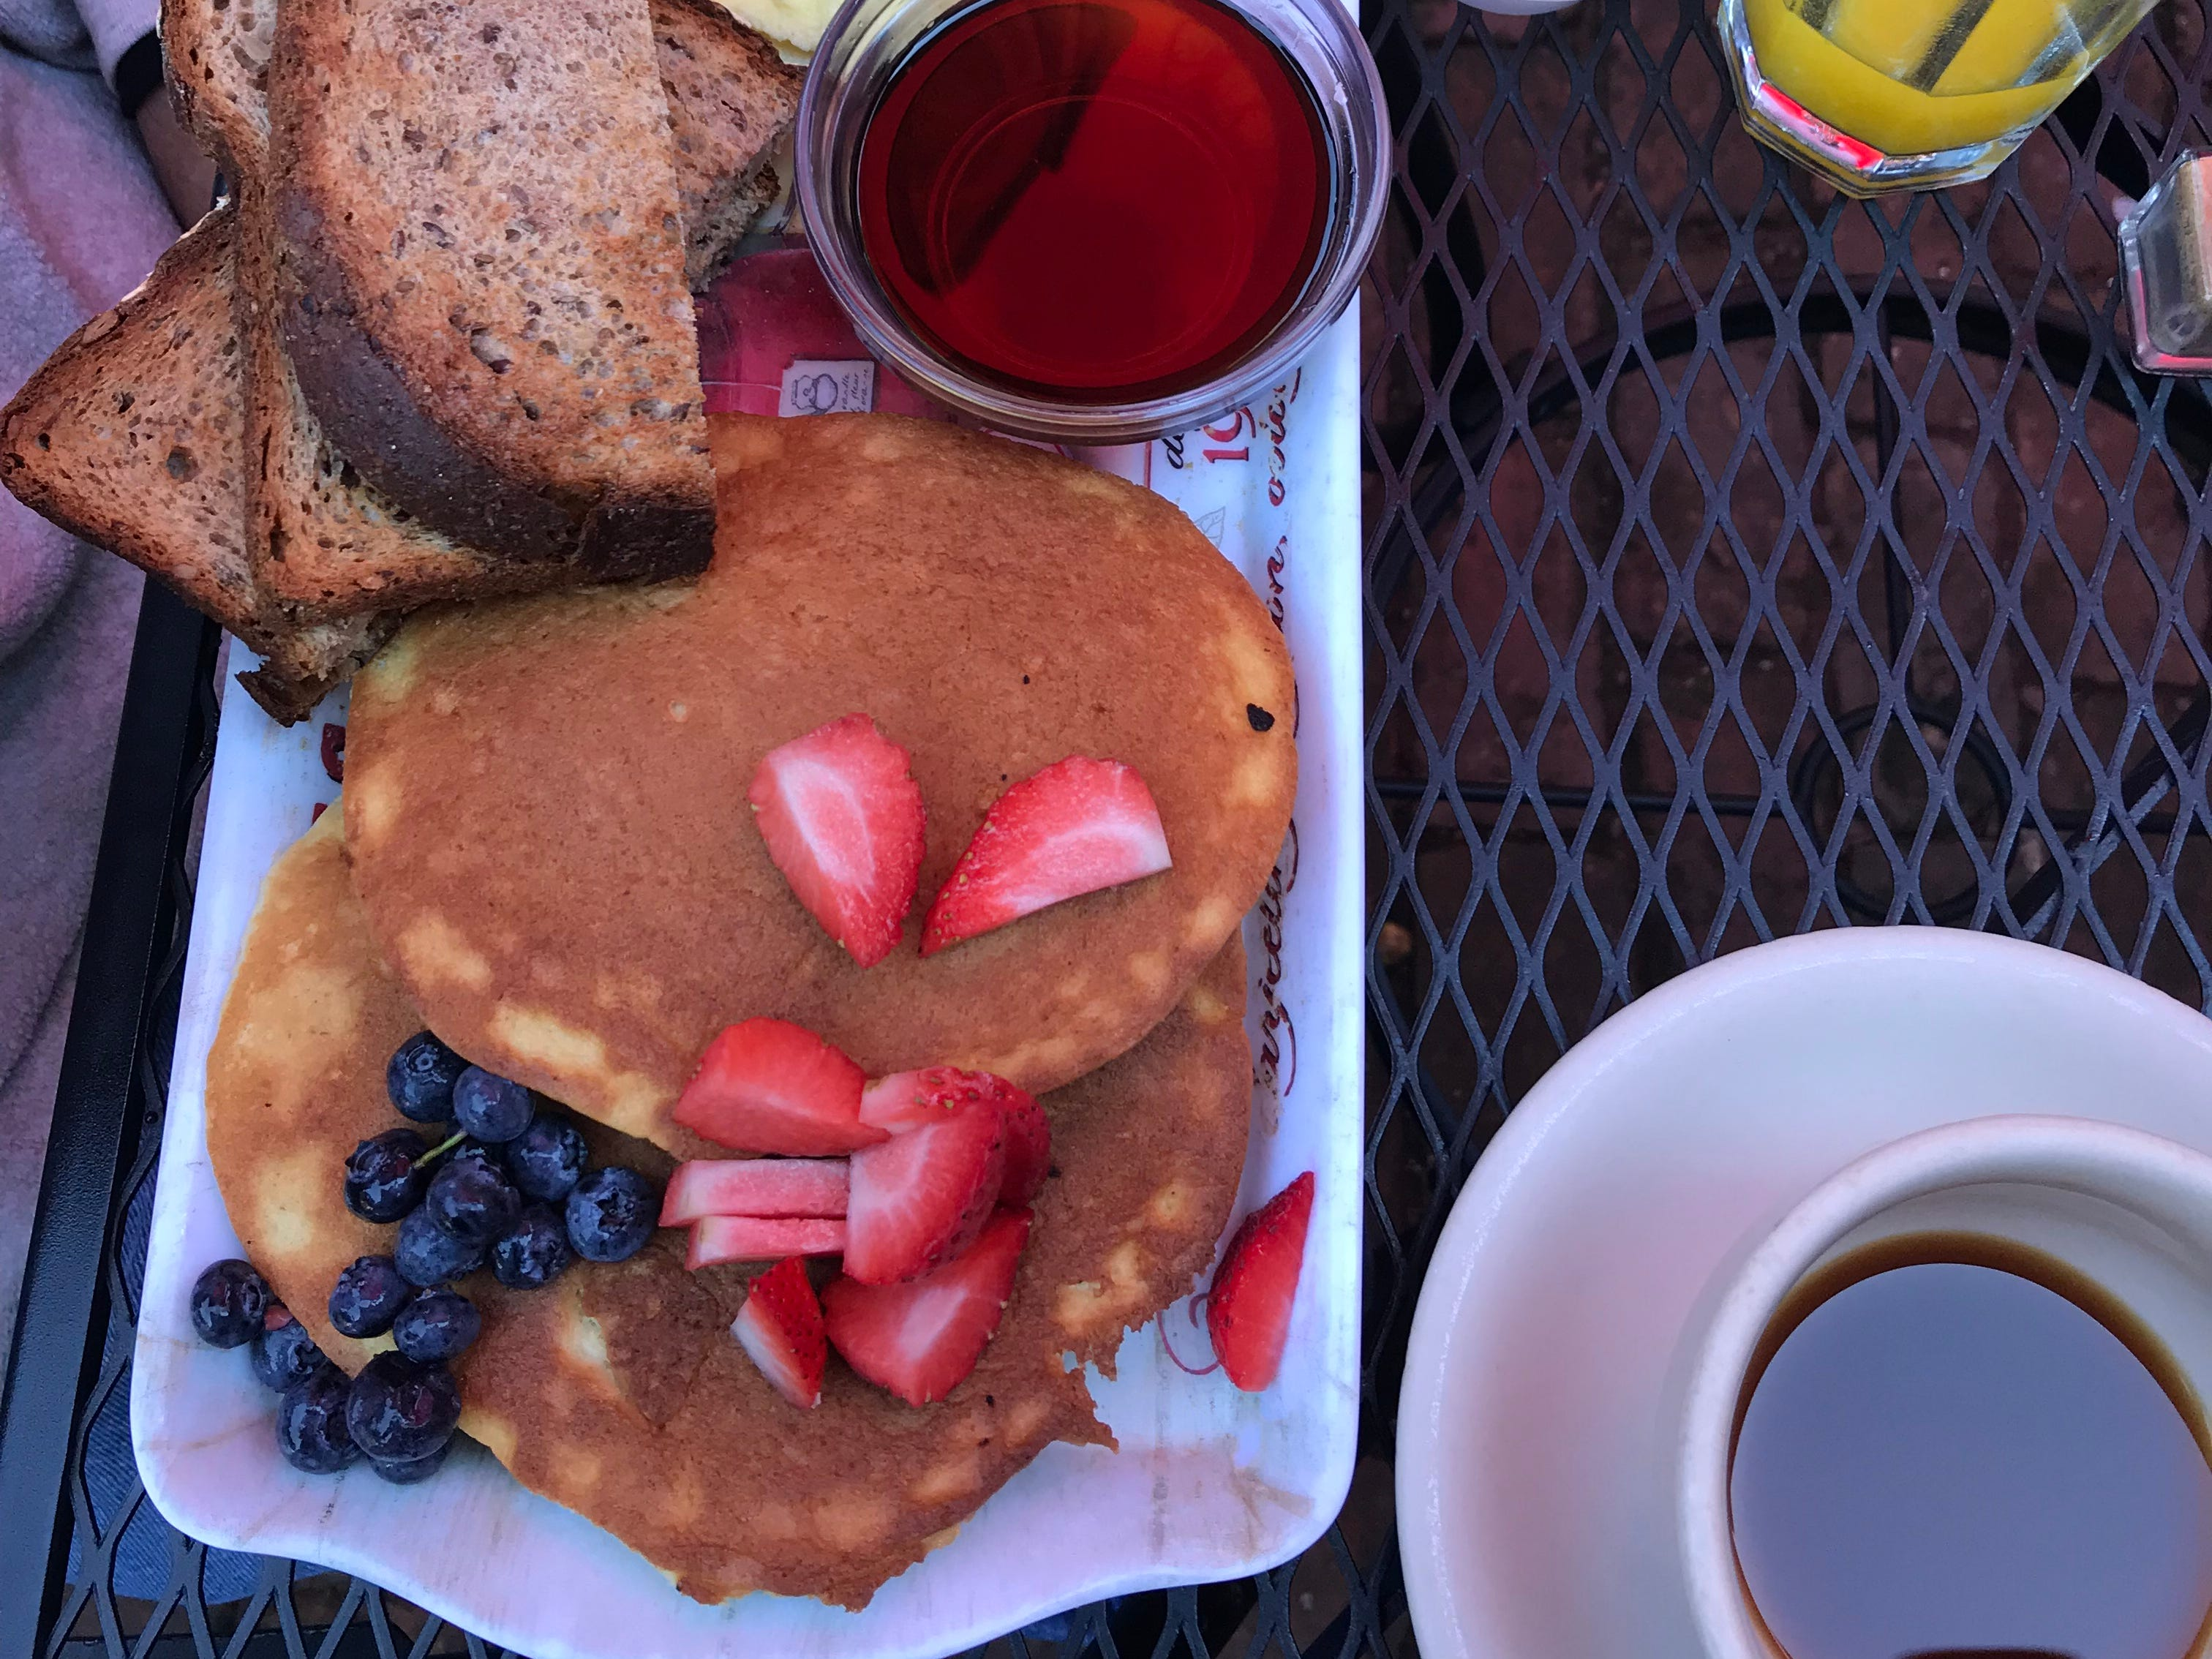 Ricotta pancakes at Art Cafe of Nyack. Photographed August, 2018.